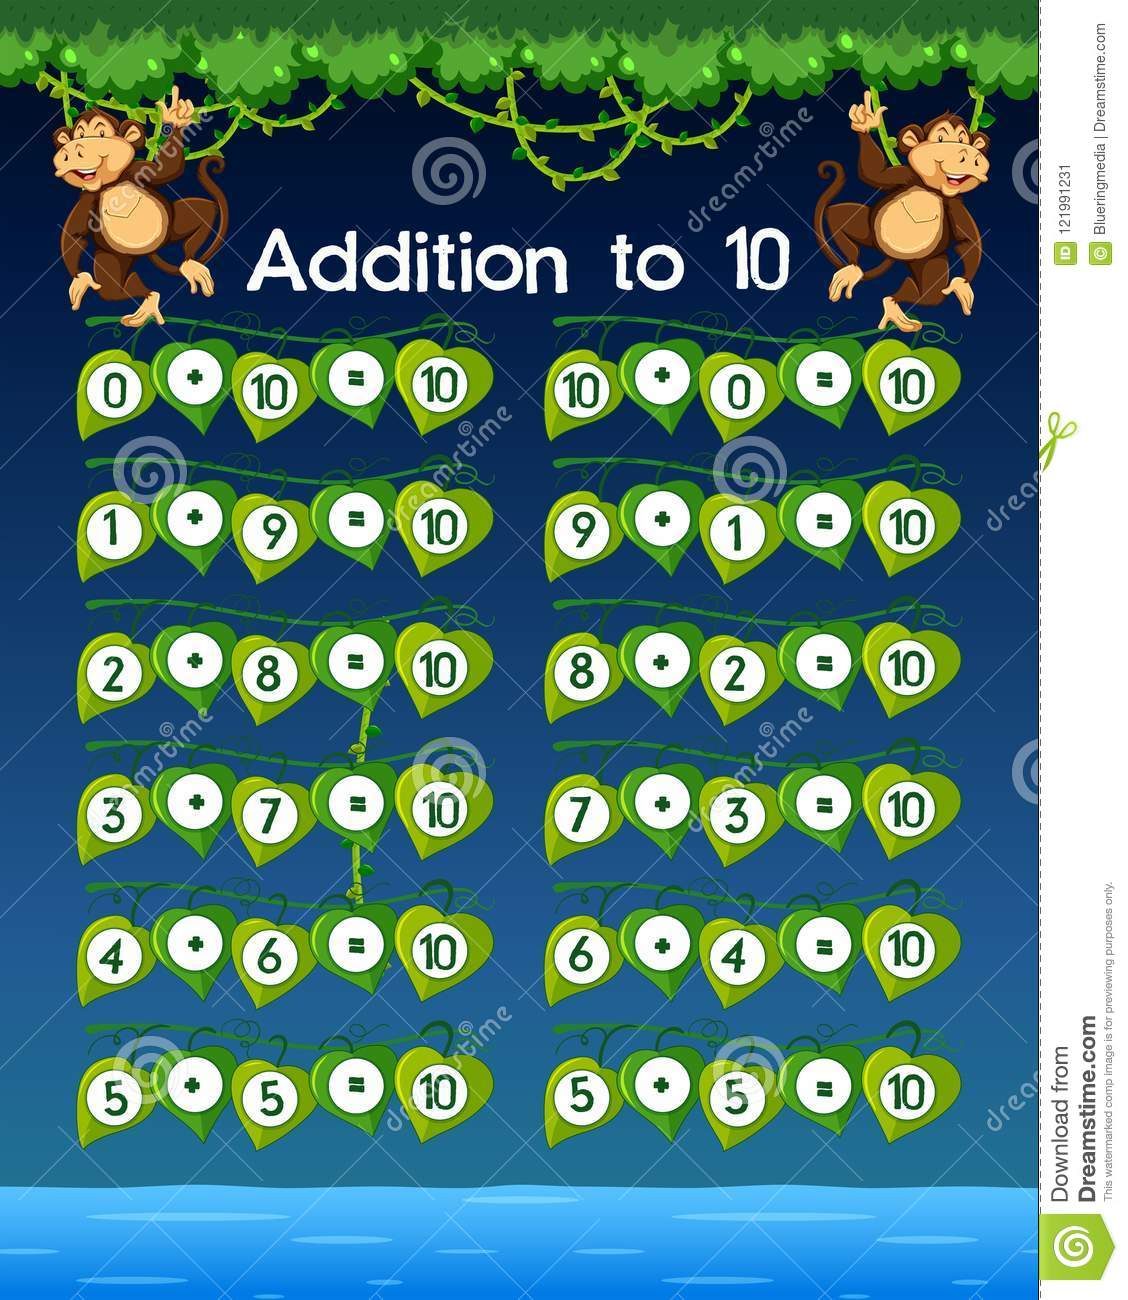 A Math Worksheet Addition To 10 Stock Vector